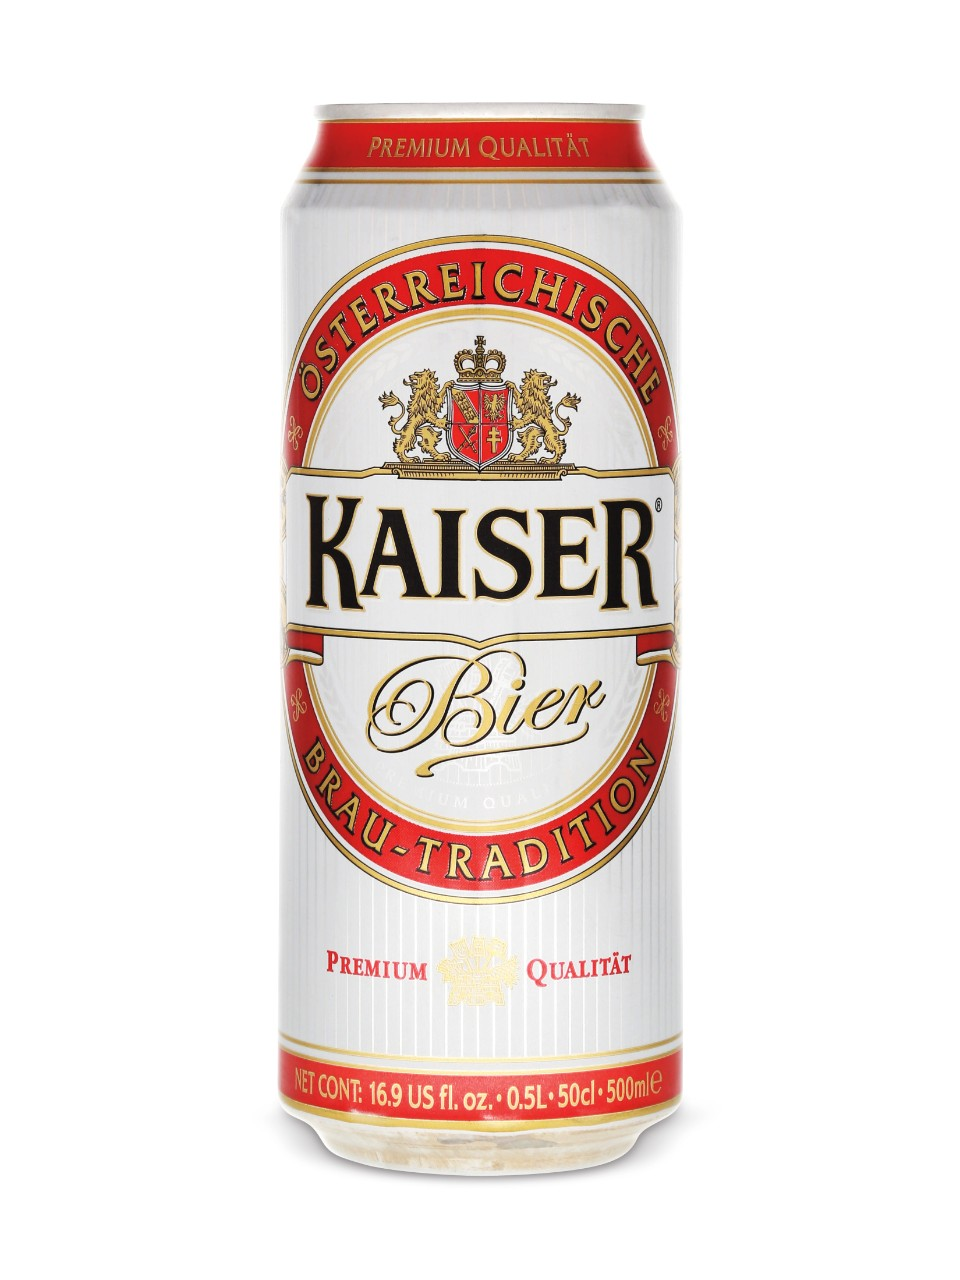 Image for Kaiser Beer from LCBO